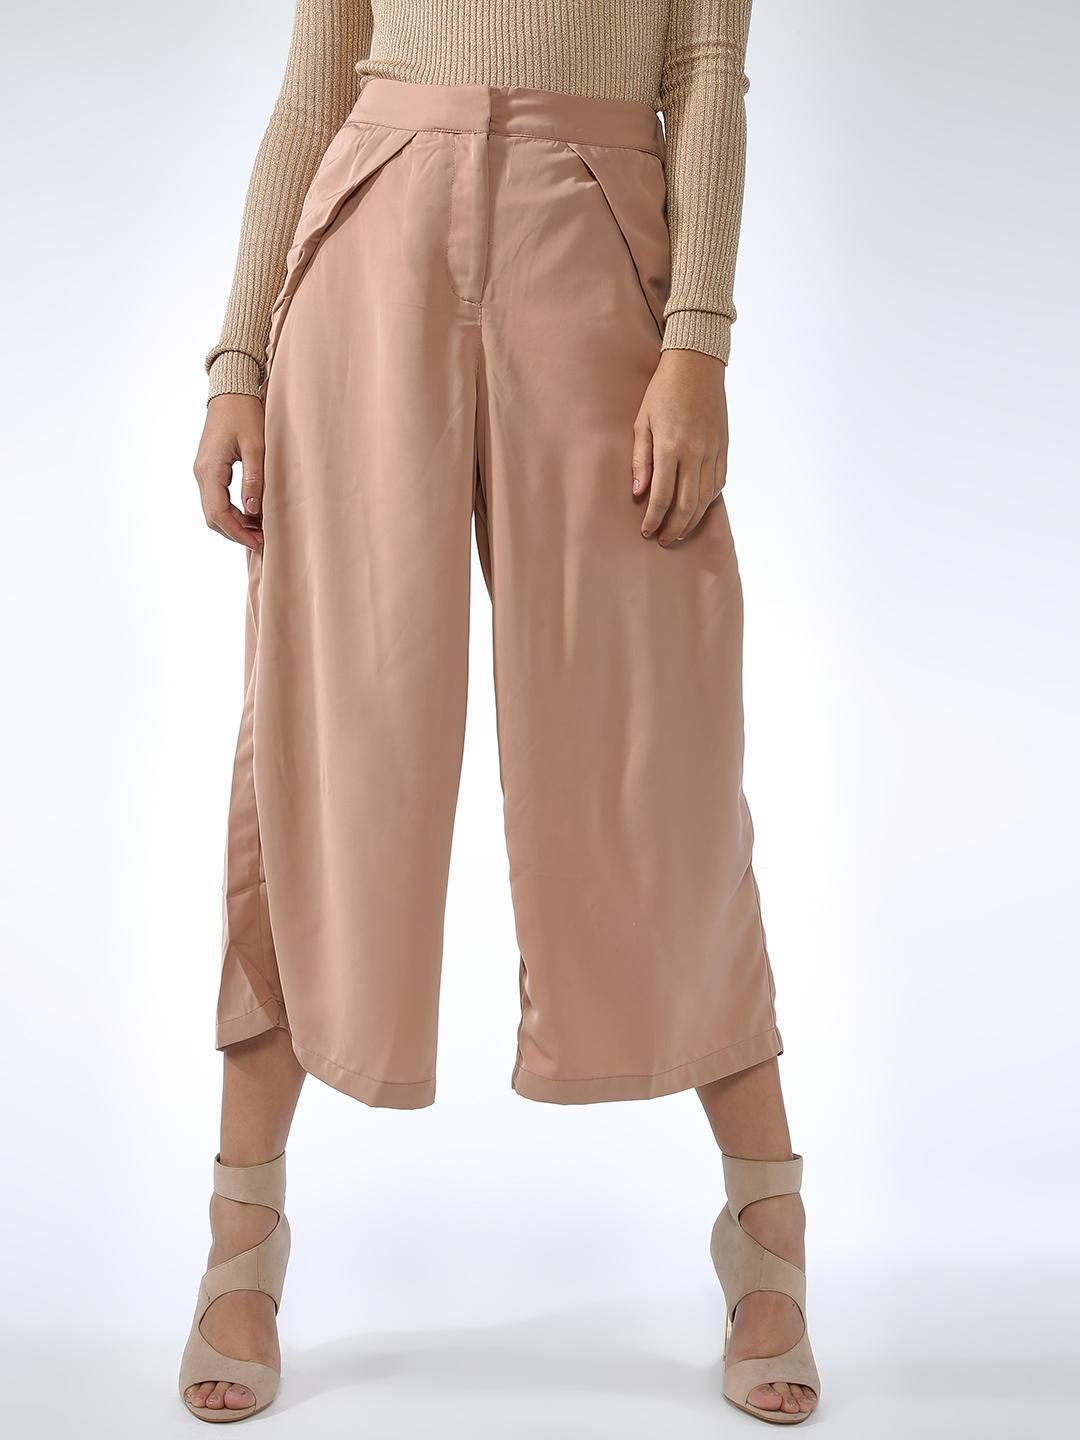 Oxolloxo Beige Casual Pastel Trousers 1